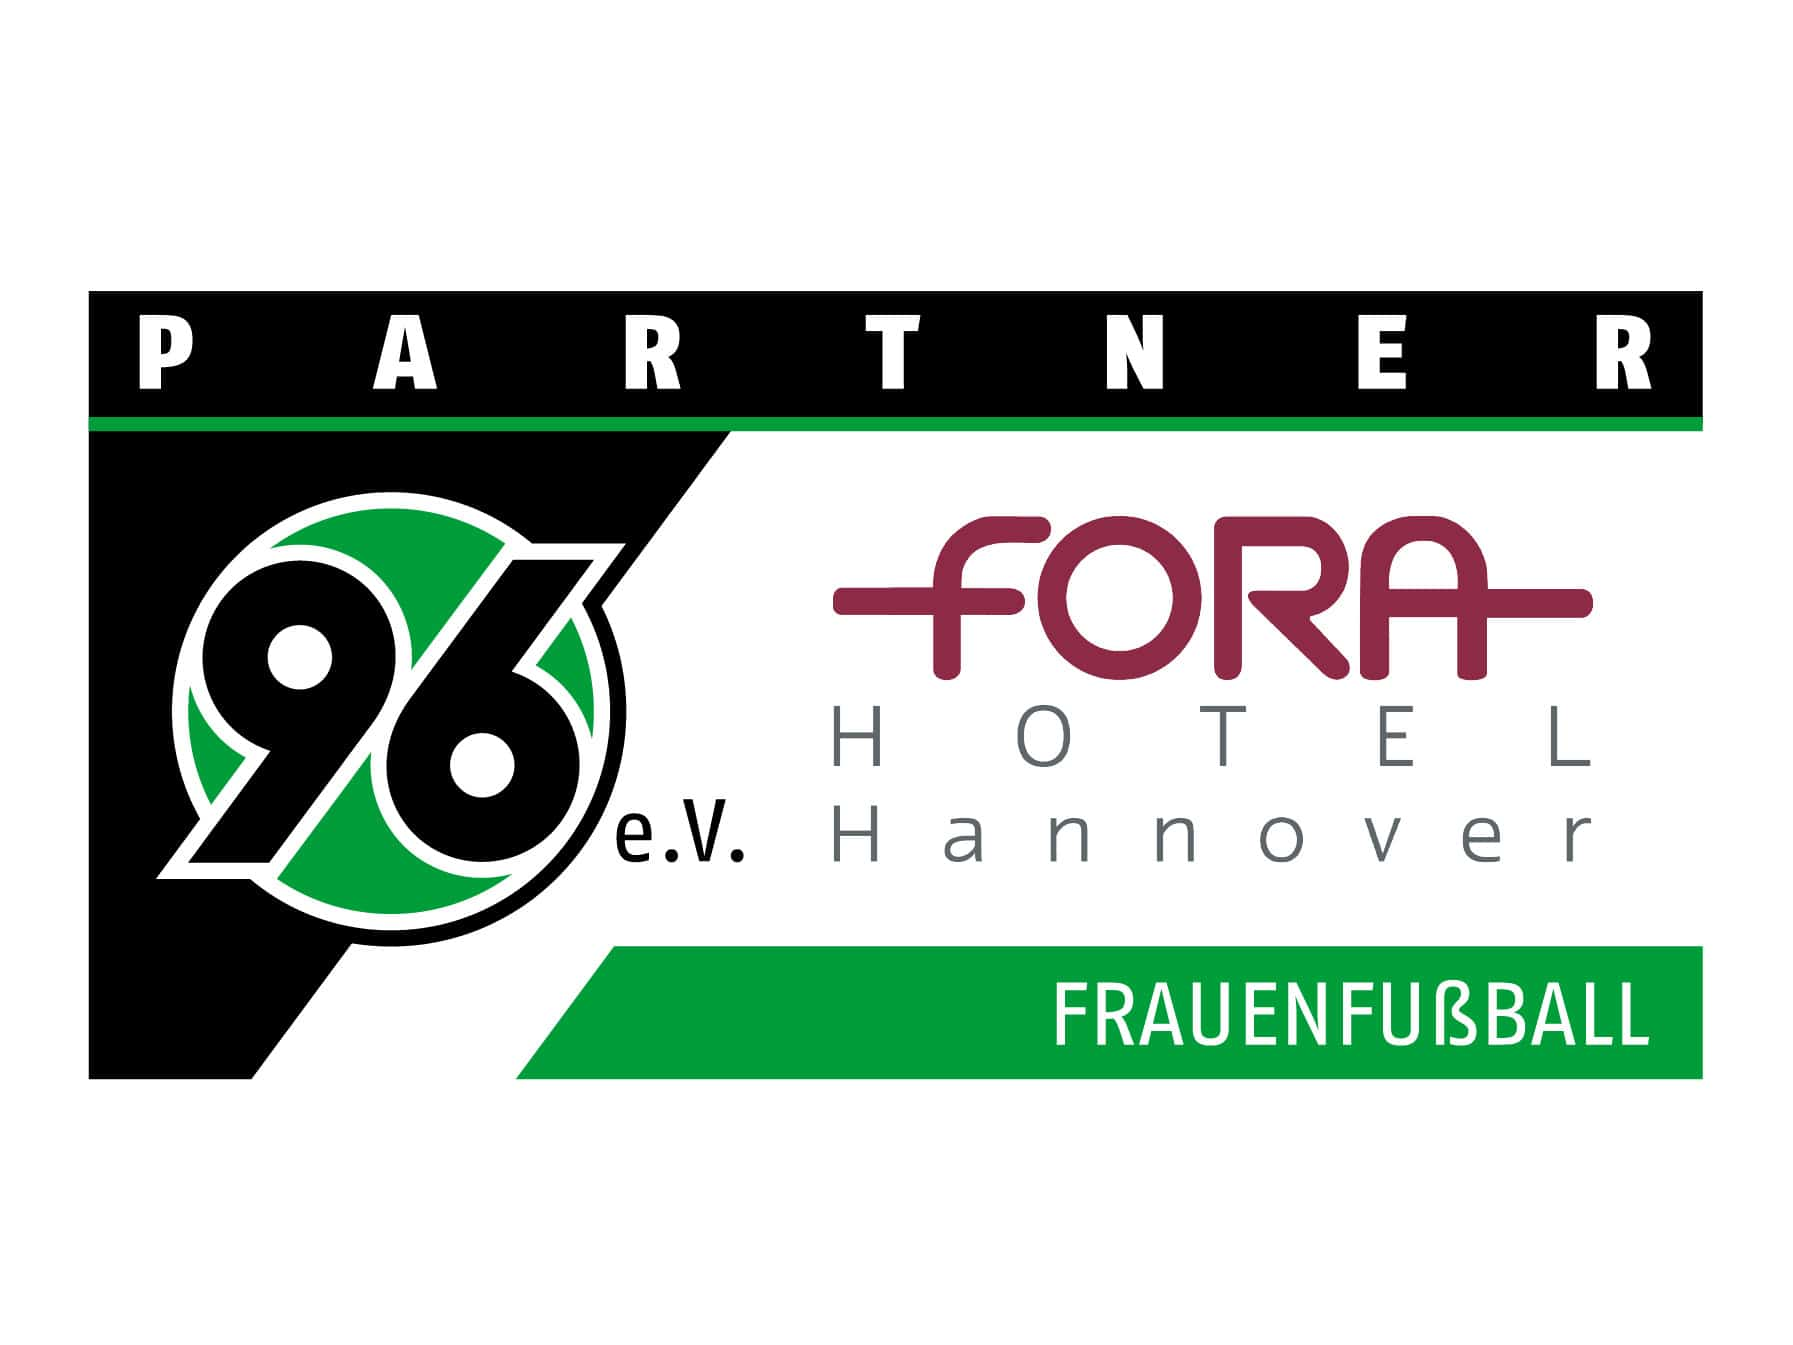 Hannover 96 women's football